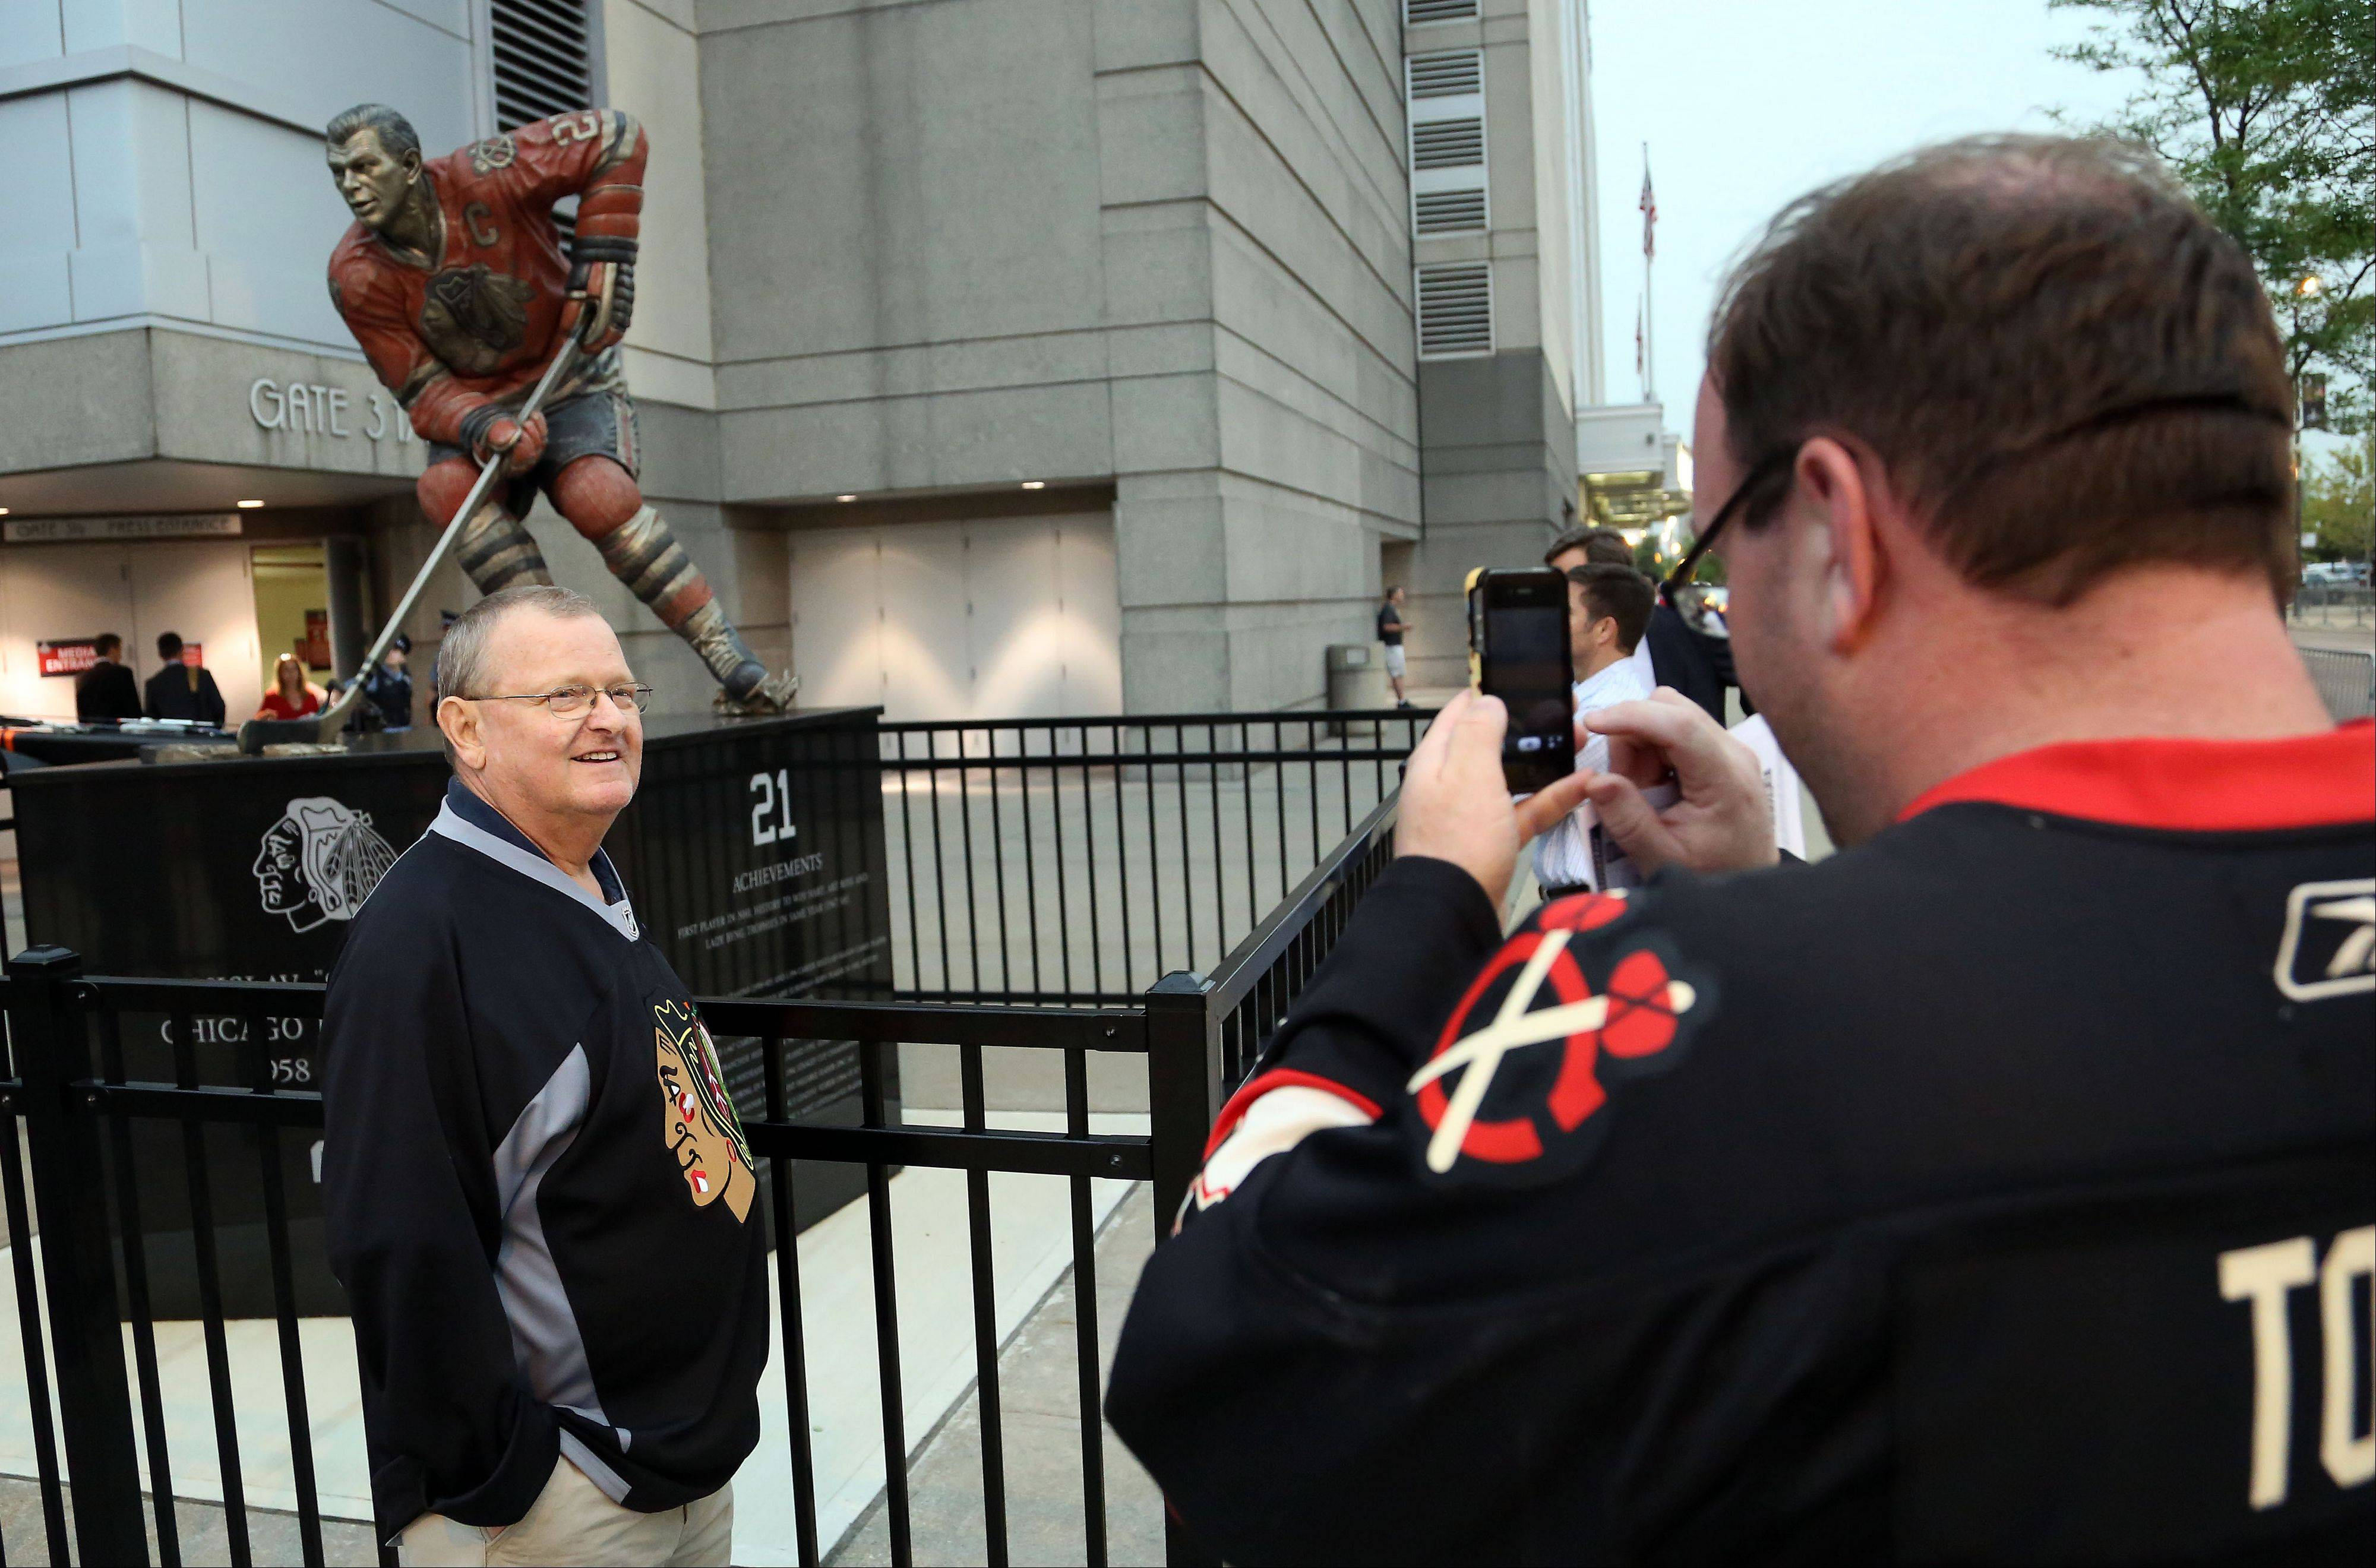 Bart Roberts of Elkhorn, Indiana shoots a picture of his father Larry in front of the Stan Mikita statue.